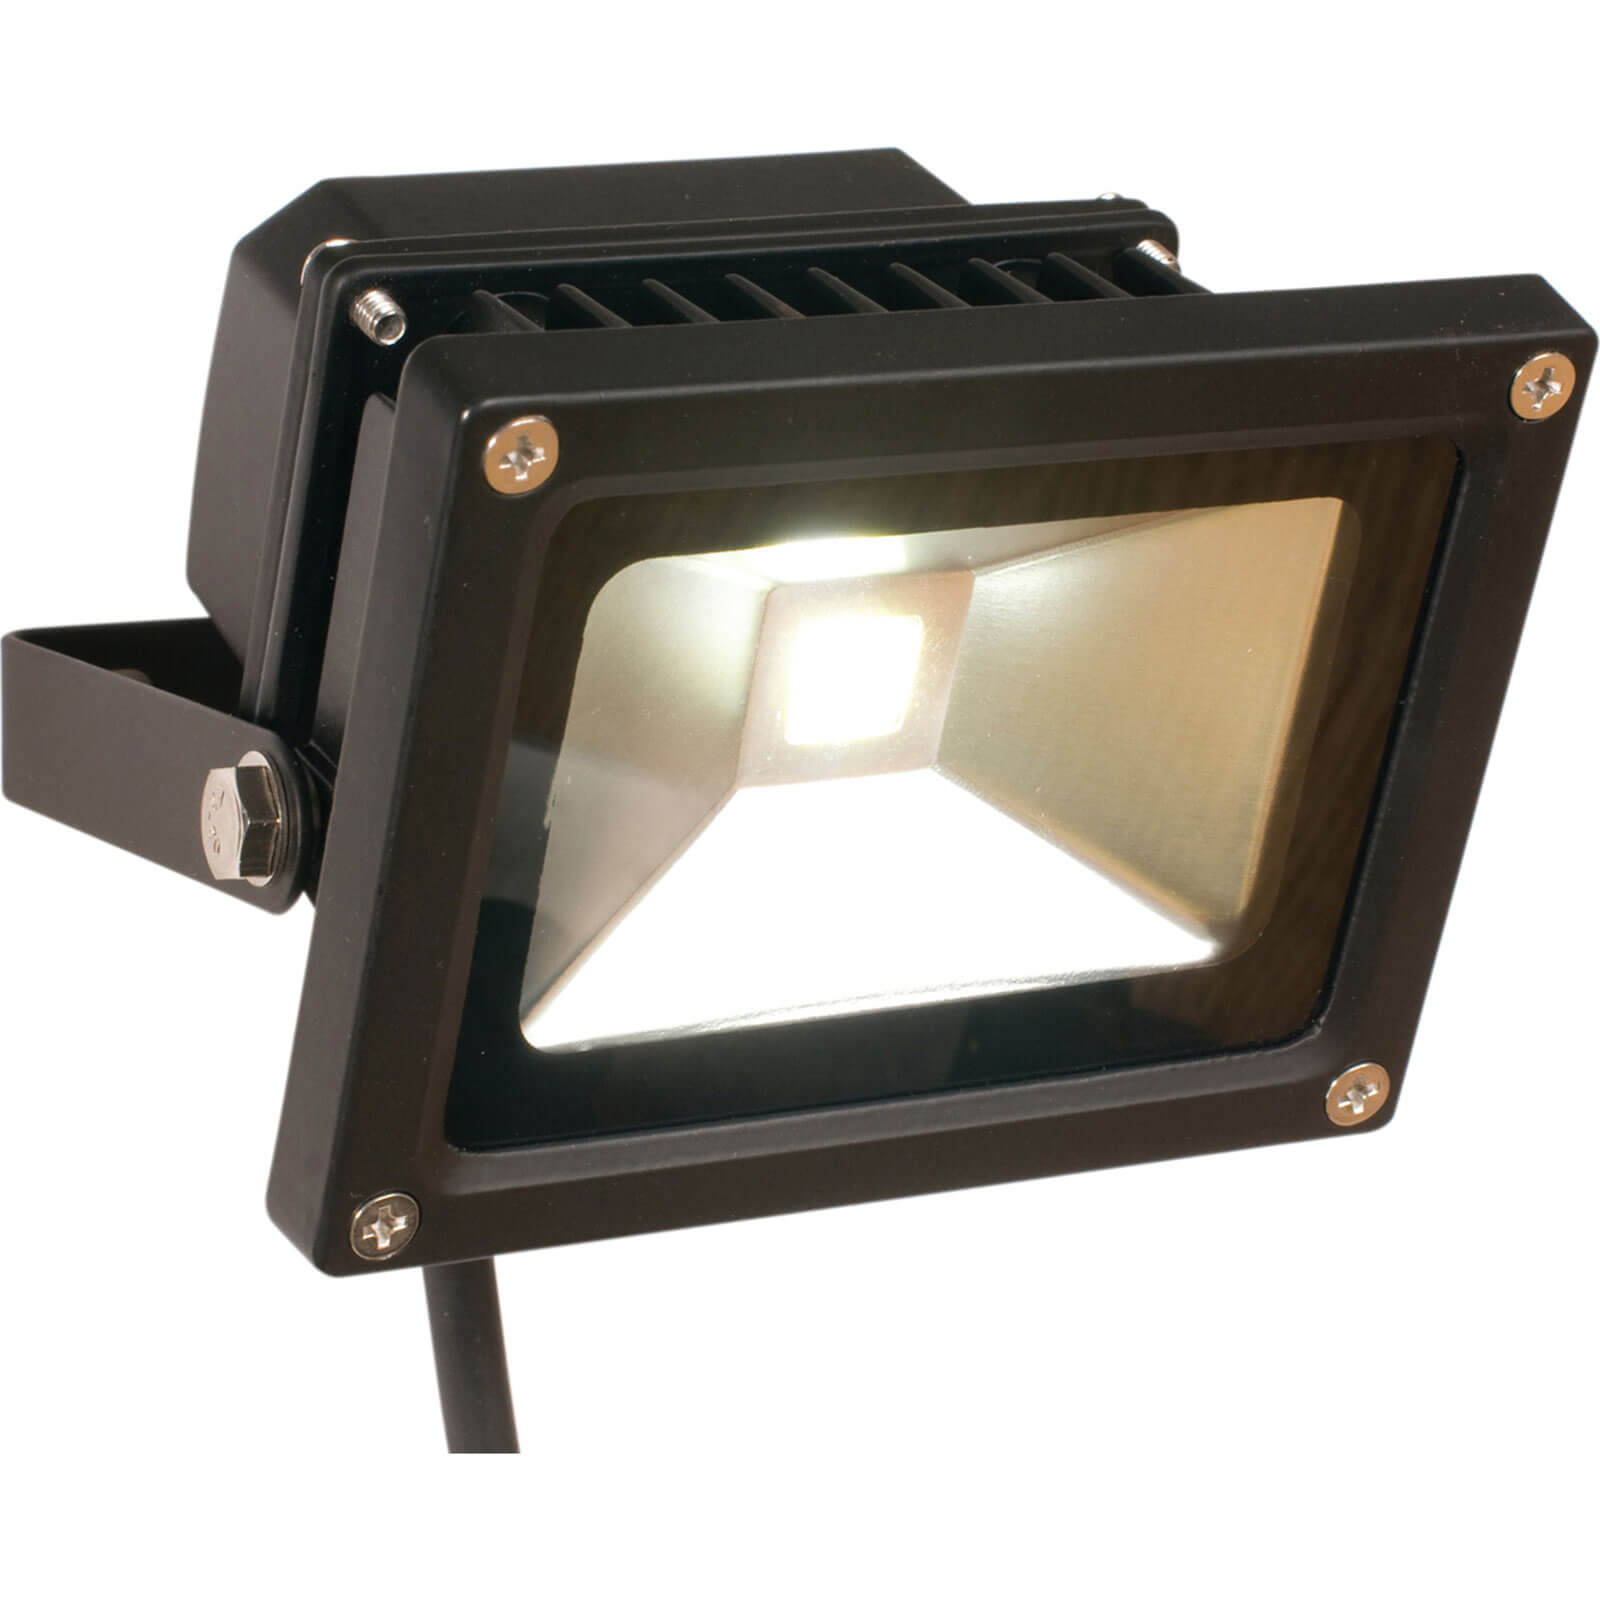 Image of SMJ LED Floodlight 10w 240v